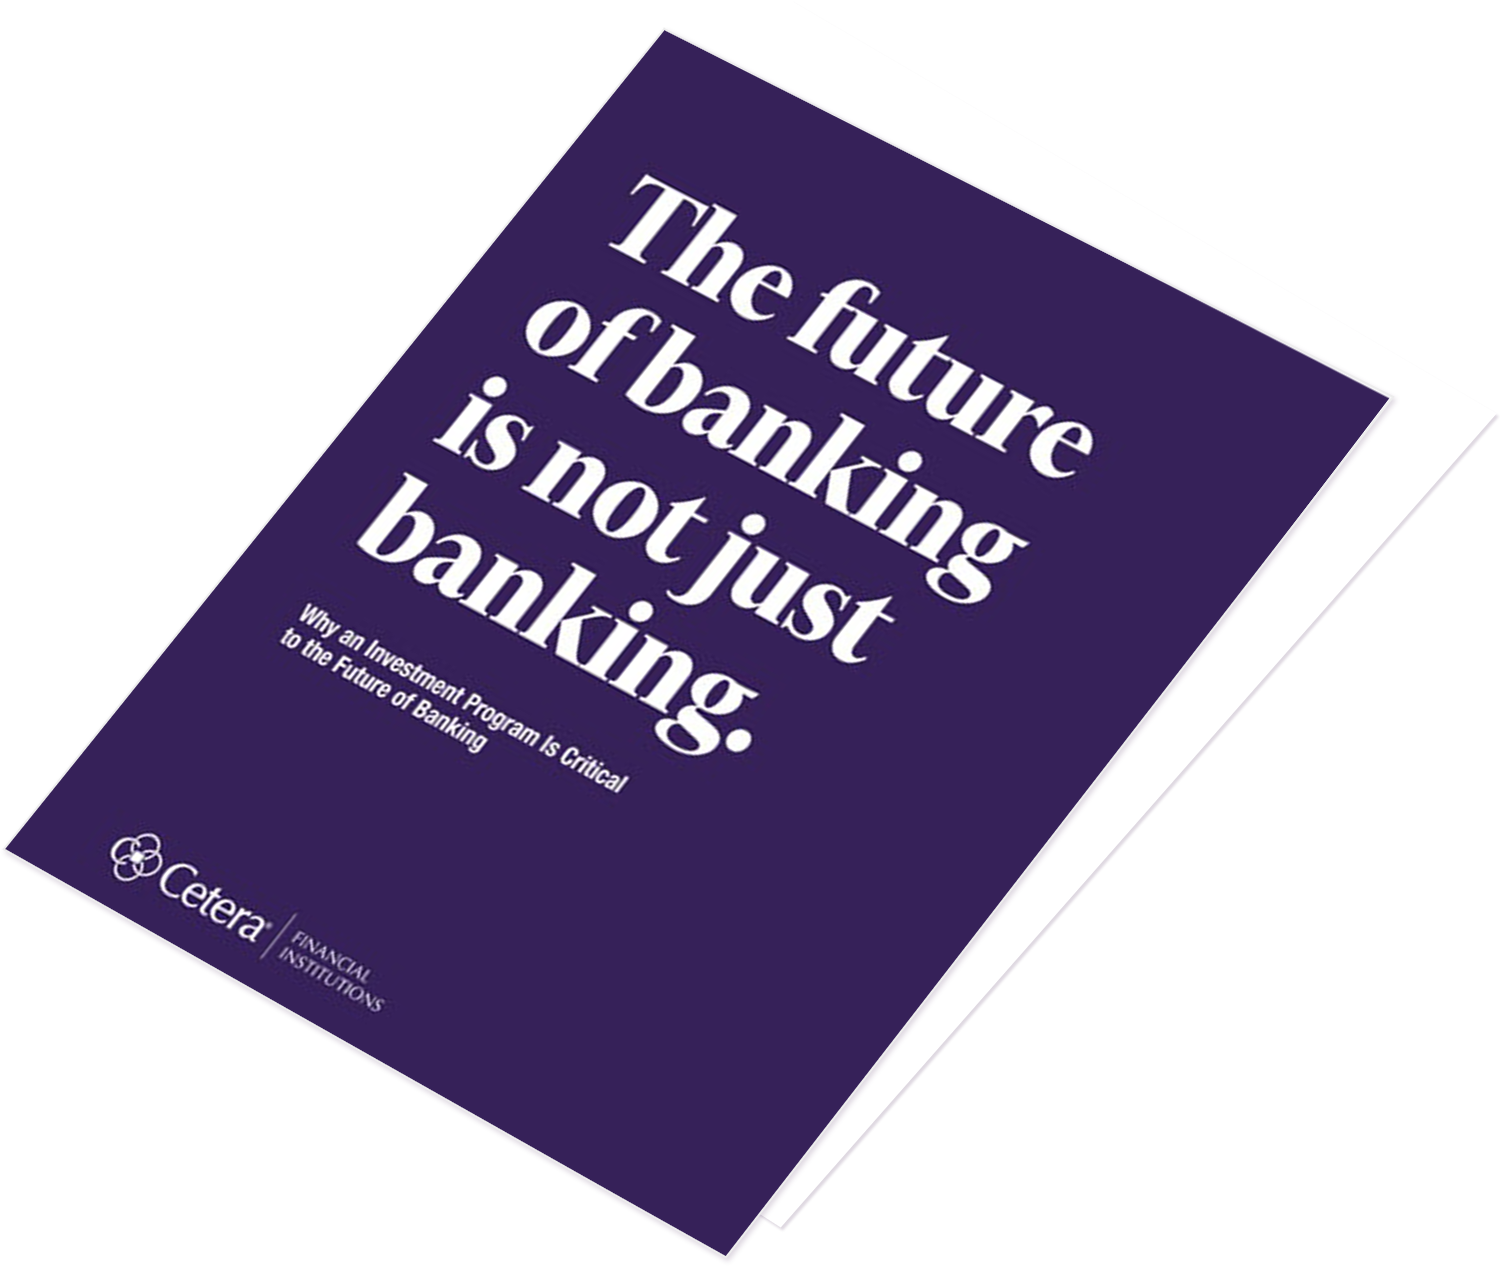 Why An Investment Program Is Critical to the Future of Banking